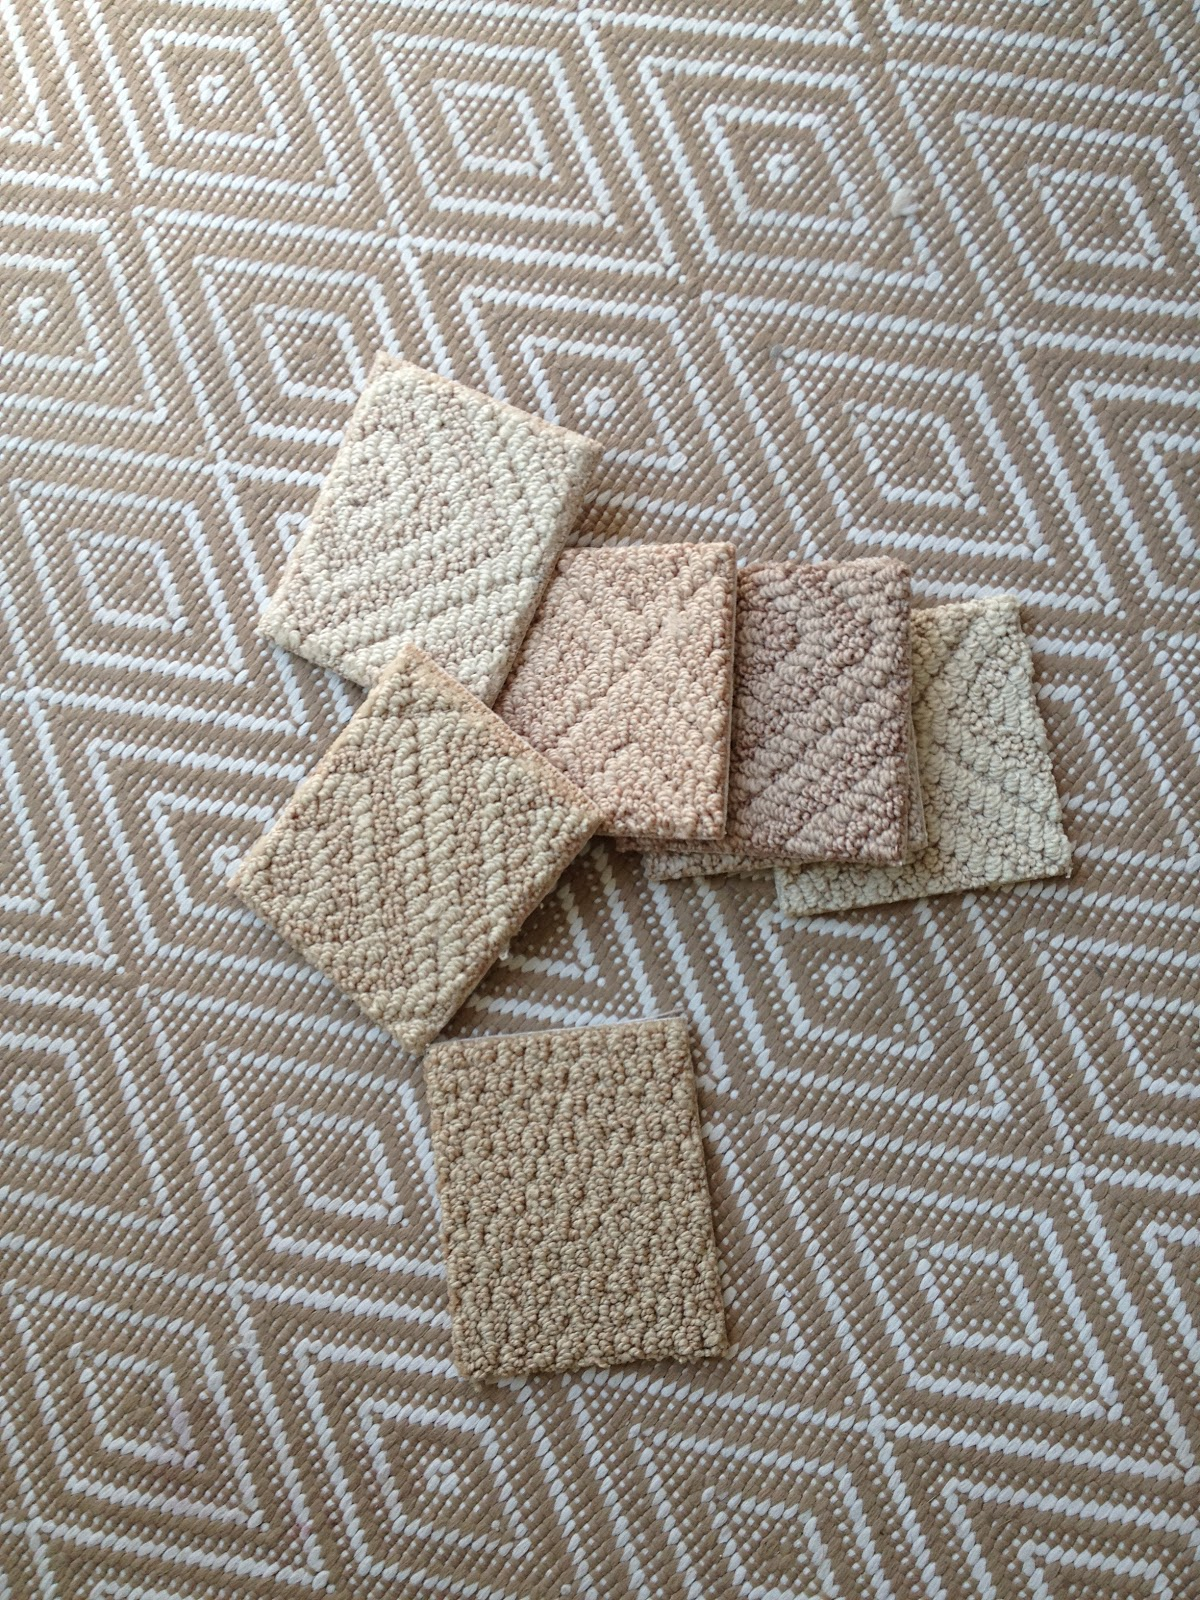 How To Install Stair Runners Over Carpet Ehow Party Invitations Ideas